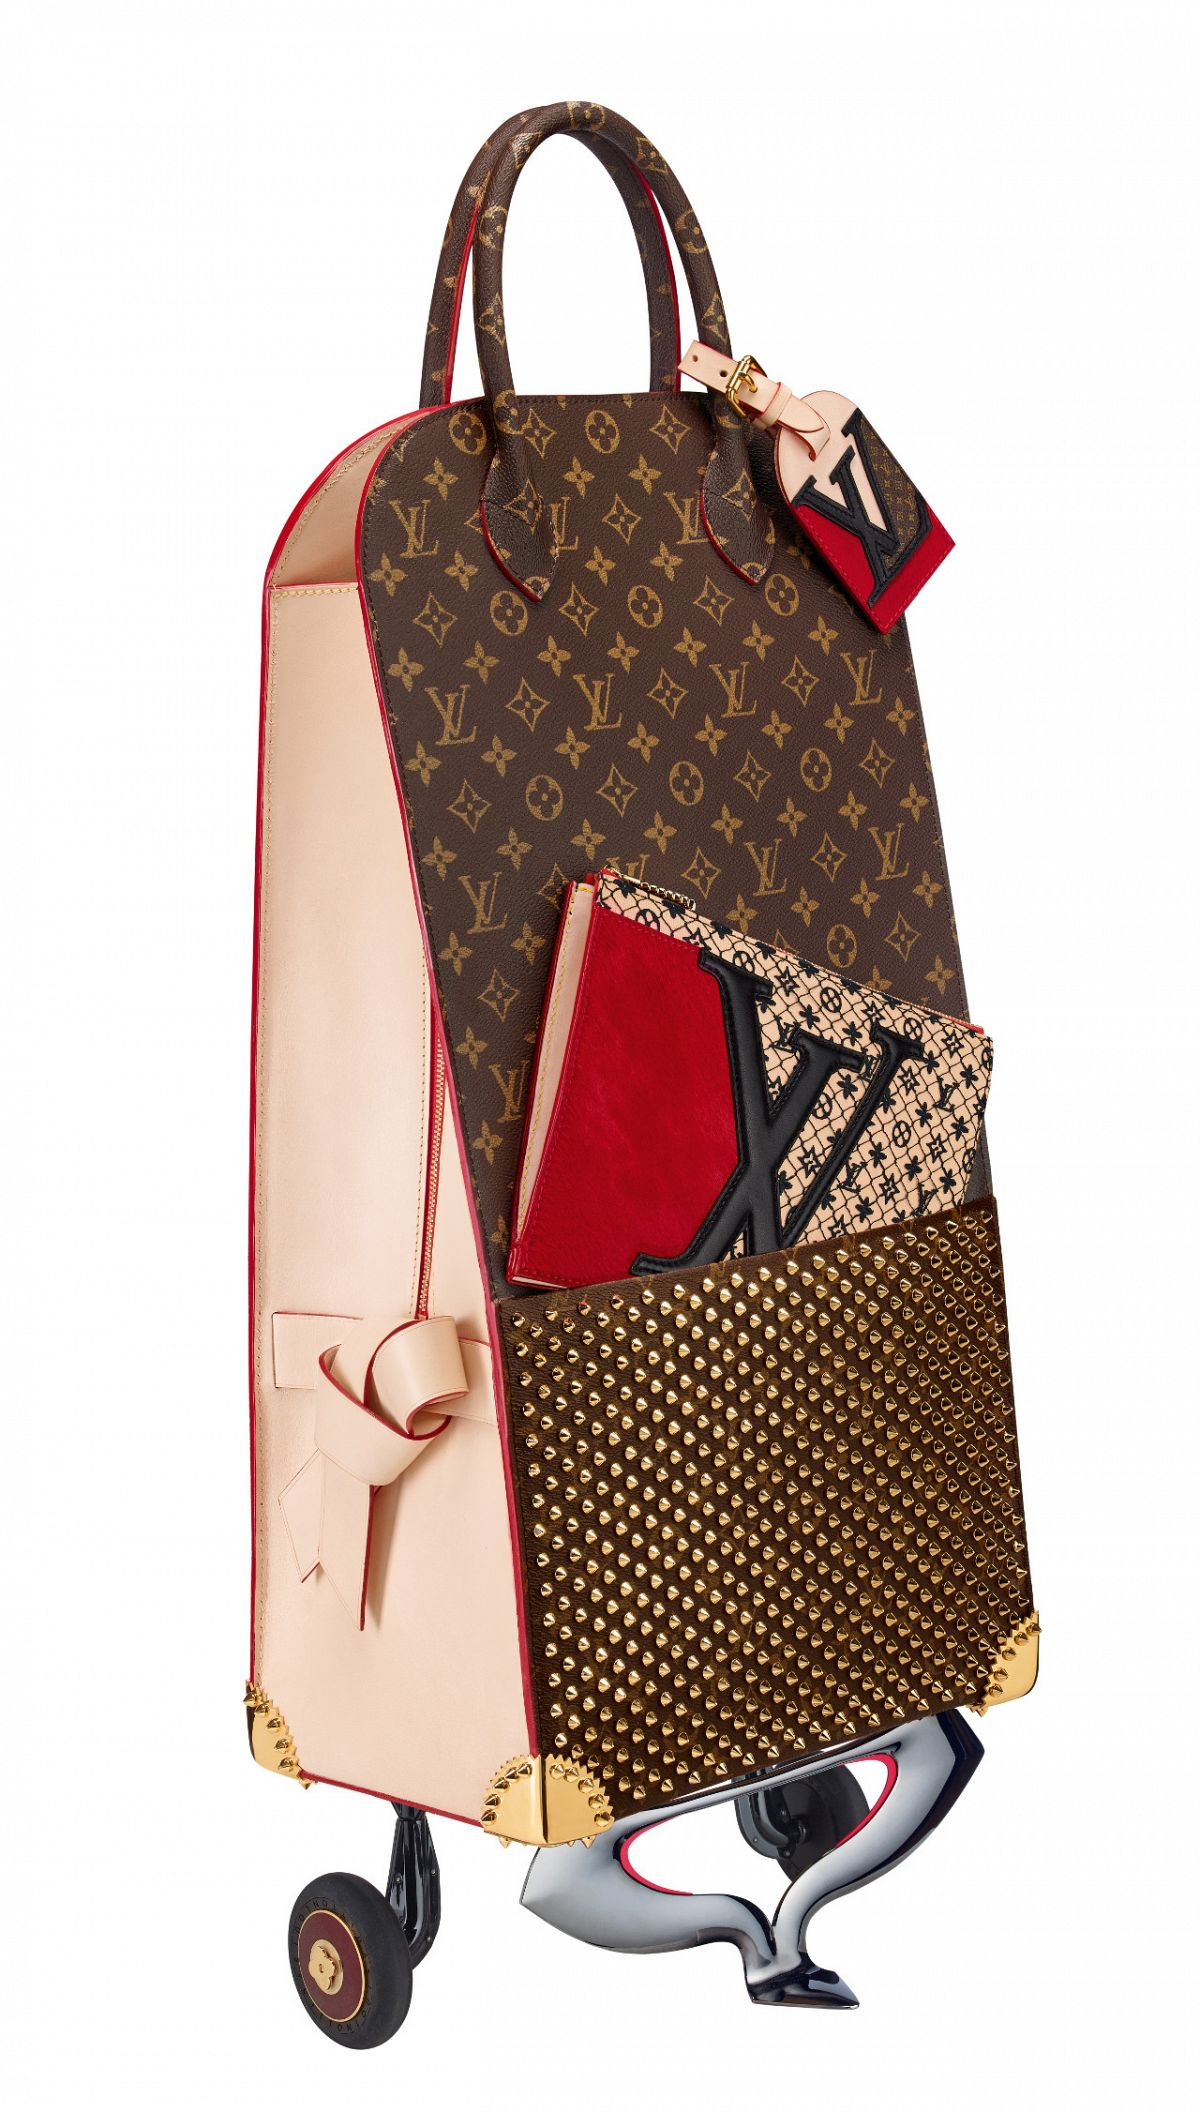 46fb5a80ca2 News - Christian Louboutin Online - Celebrating Monogram with Louis ...